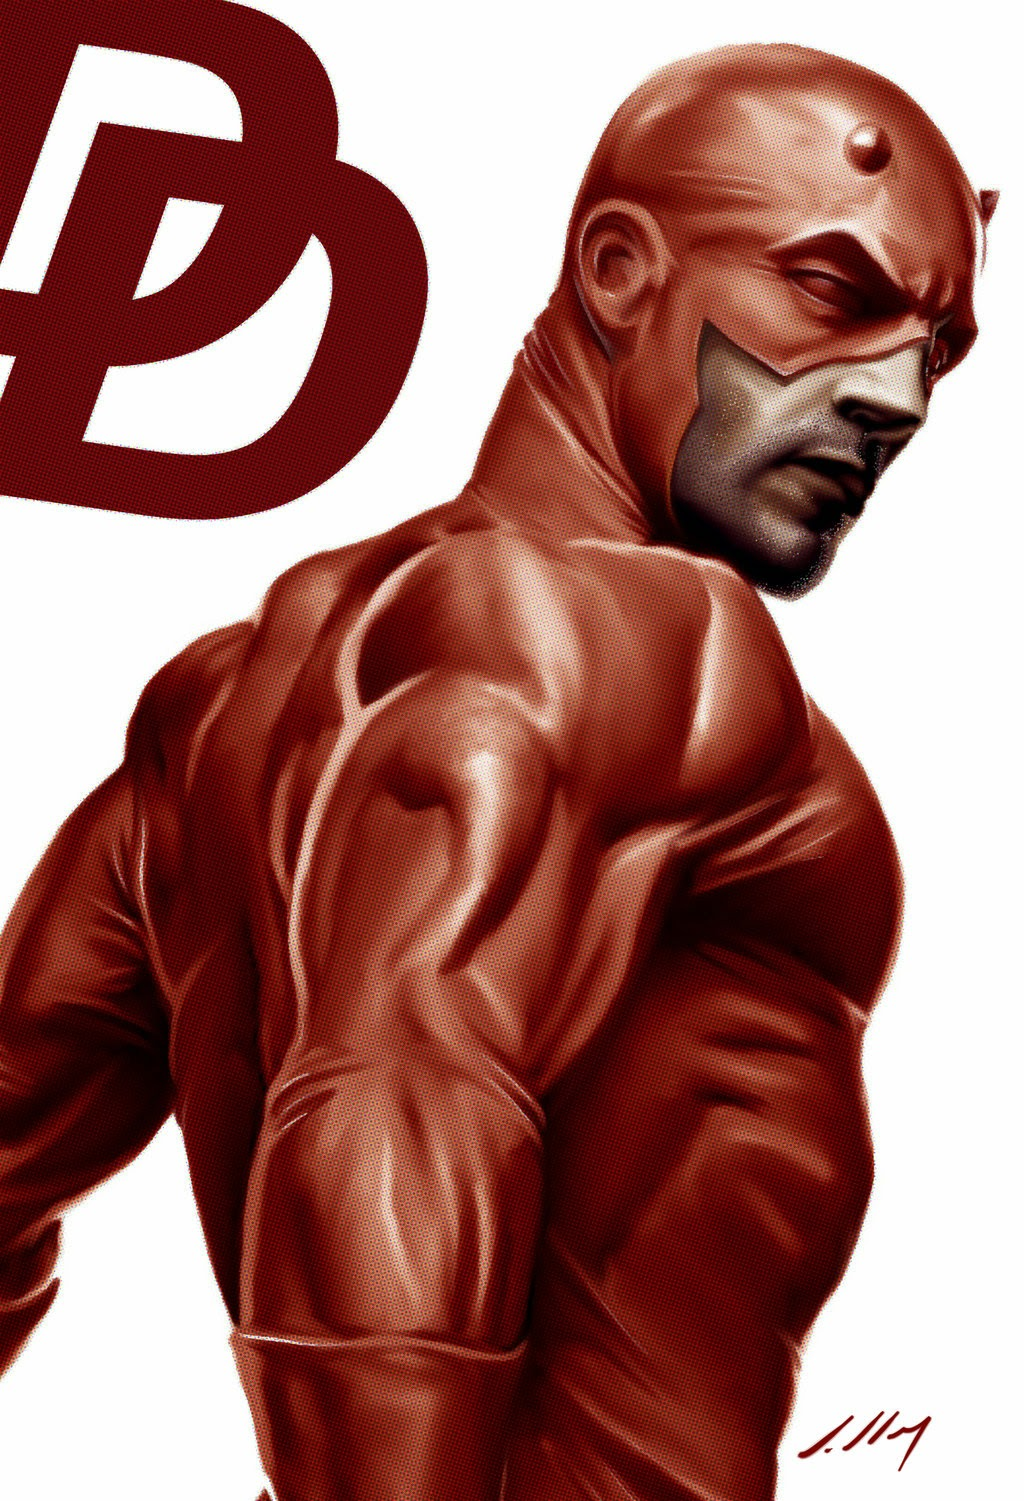 Alexandre Salles' Daredevil from his DeviantArt Page